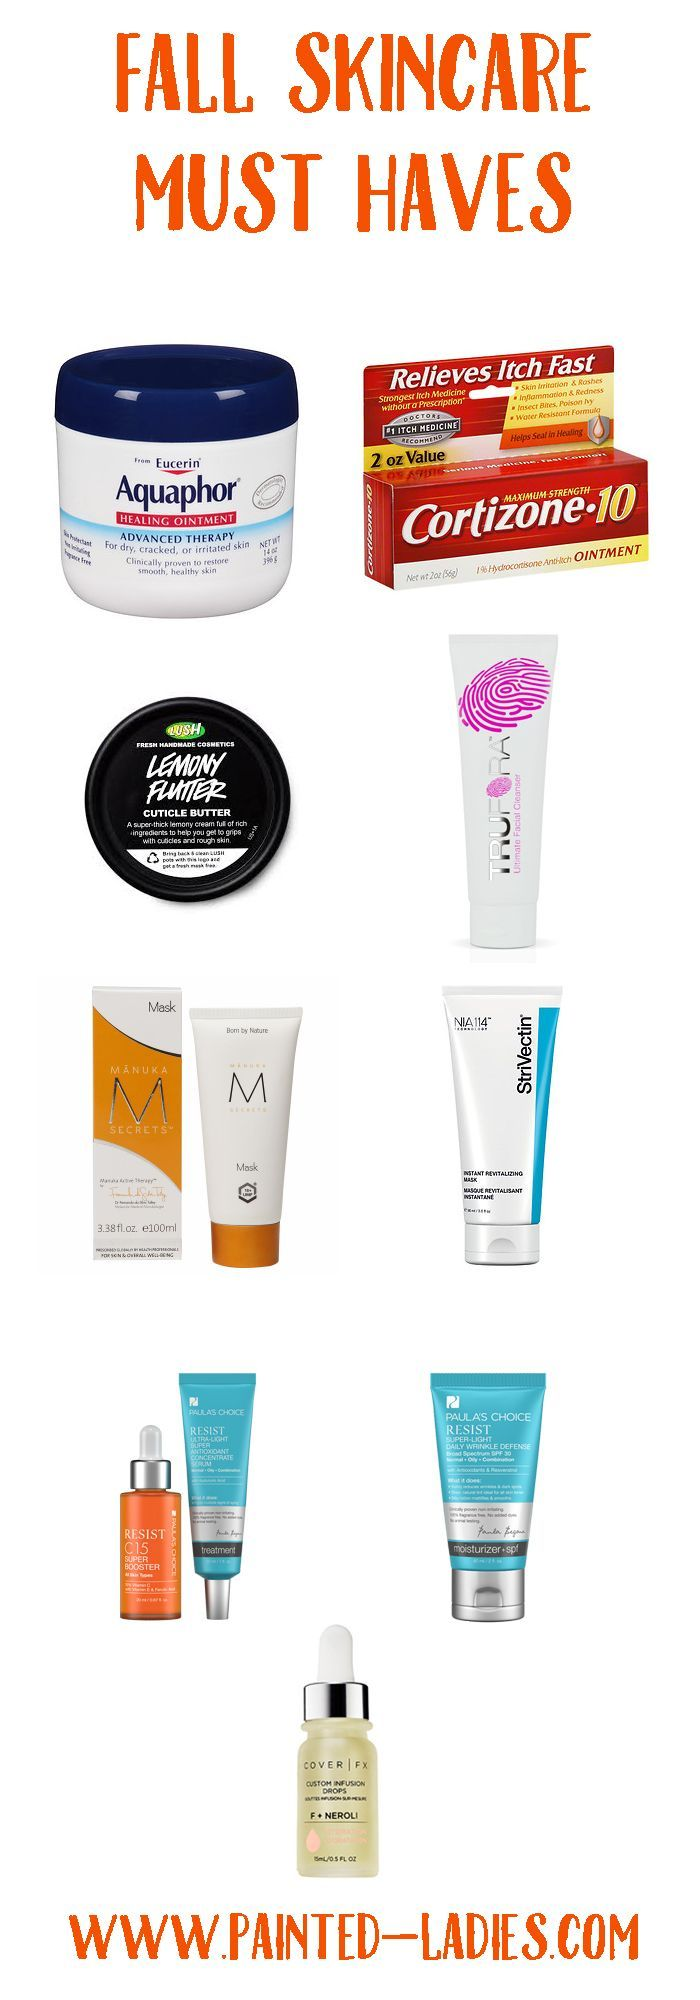 Top 10 Fall Skincare Must Haves - Painted Ladies